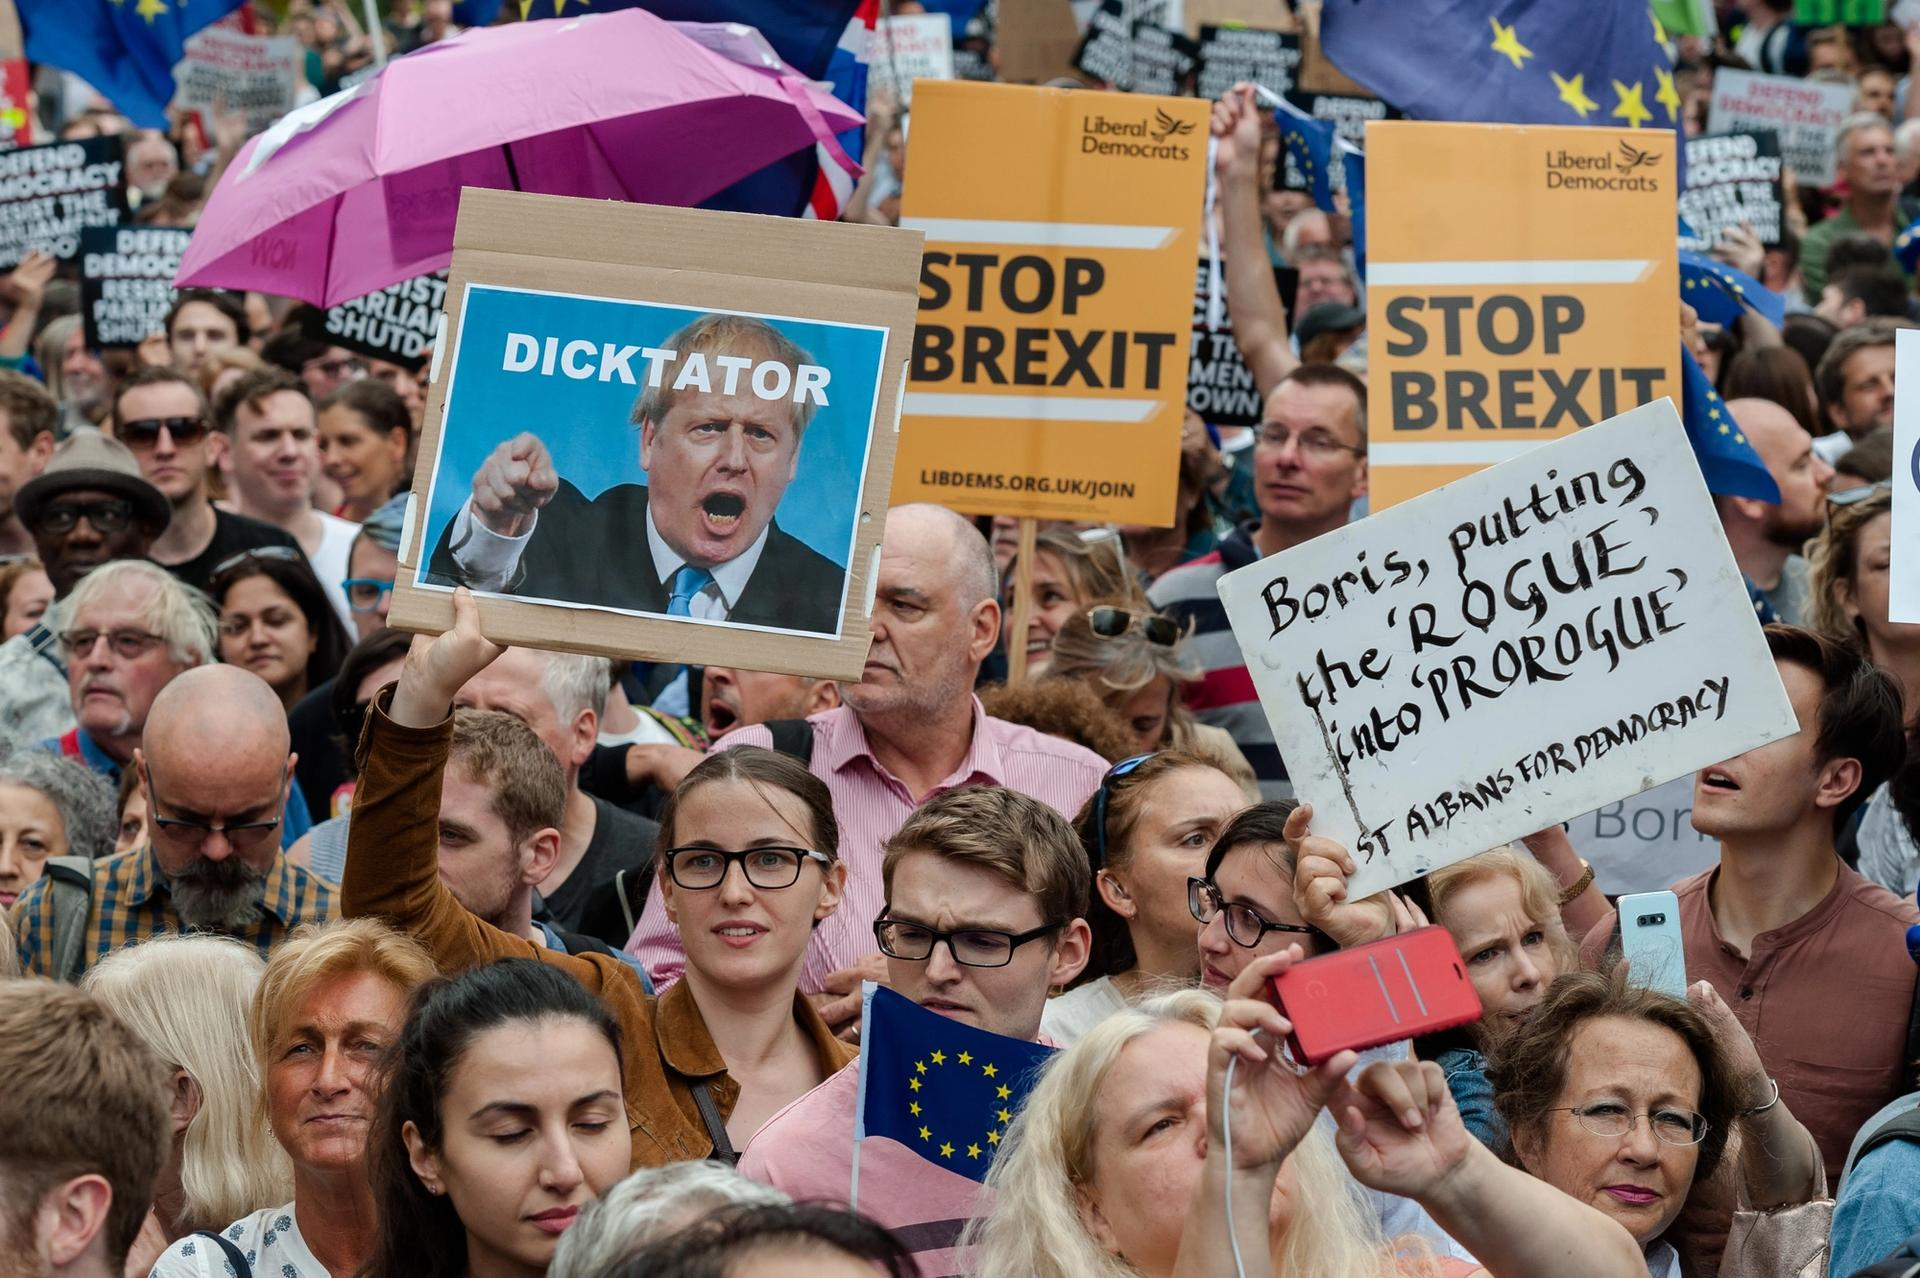 """Protestors gathered in Westminster last night chanting """"stop the coup"""" and carrying anti-Brexit placards and EU flags © Photo: Wiktor Szymanowicz/NurPhoto via Getty Images"""